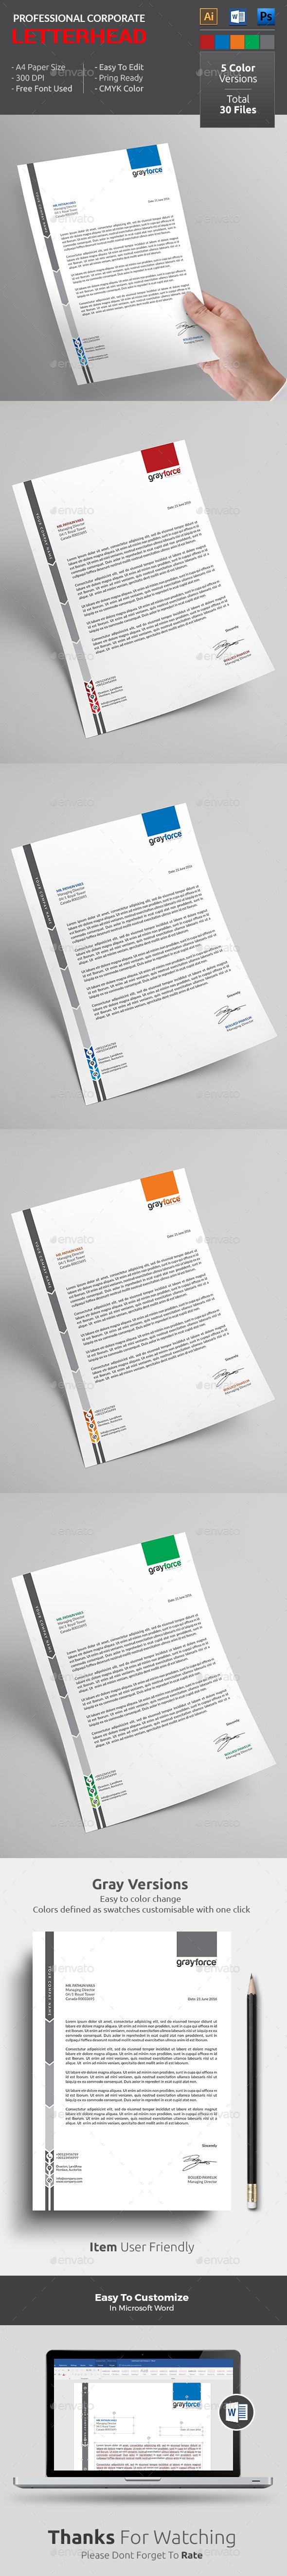 Letterhead is great for any #companyLetterhead design. This awesome letterhead format is just the layout I would love and avaialble in Word, PSD & ai format. 5 color versions are also pretty great. Download http://graphicriver.net/item/letterhead-/16841853?ref=themedevisers